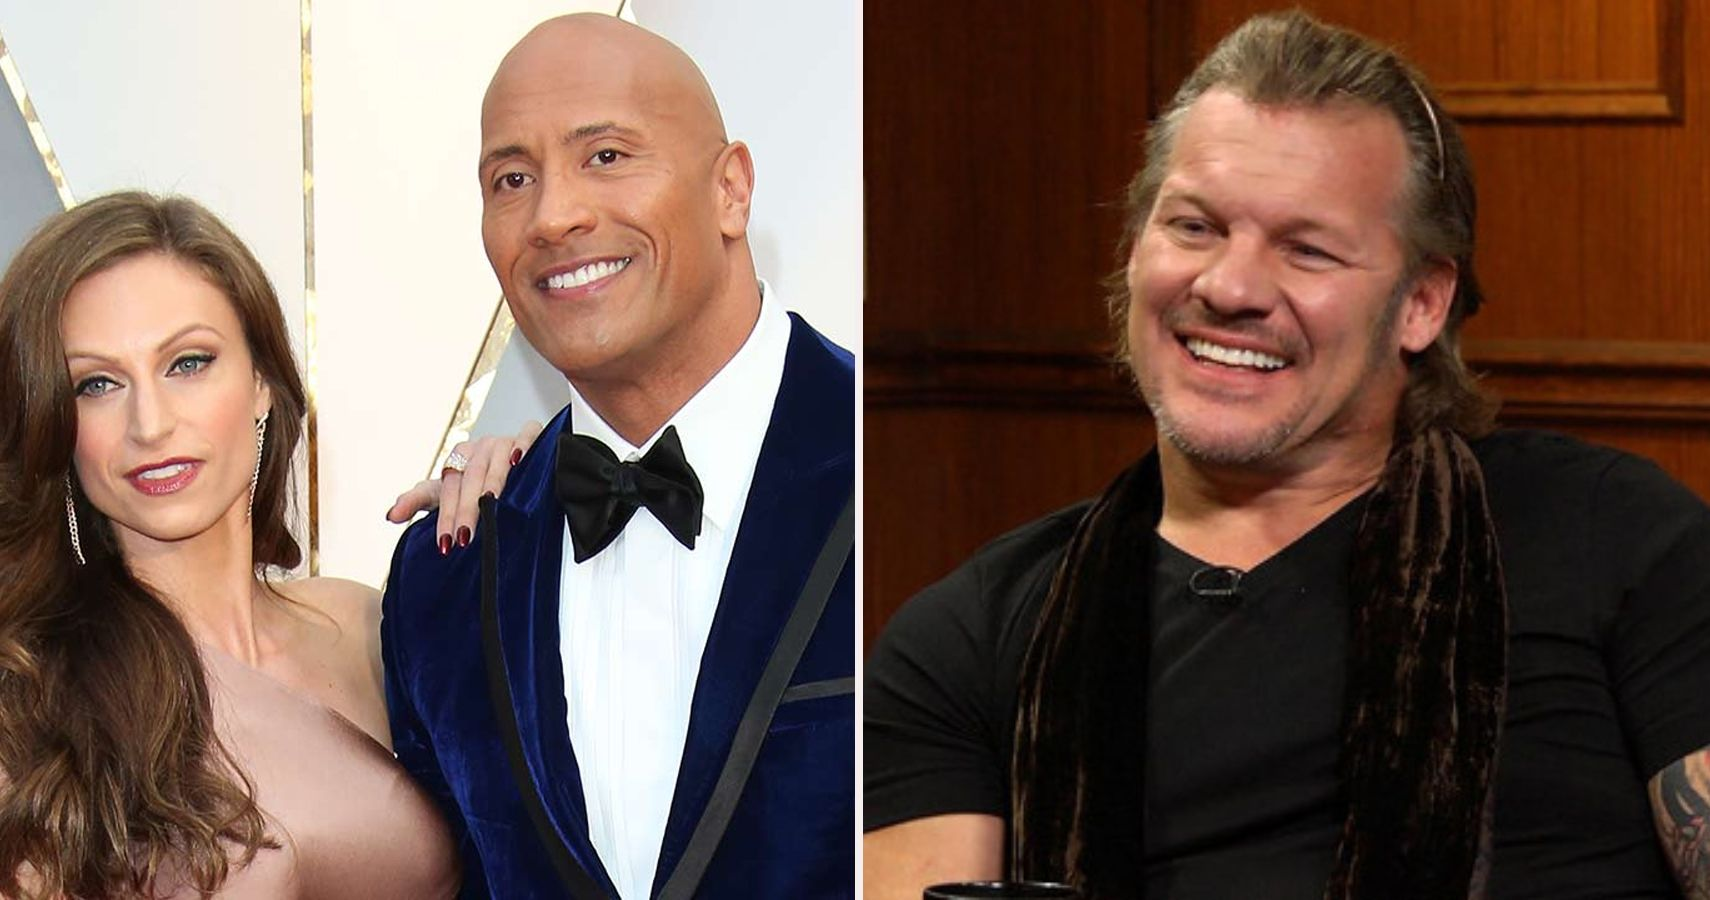 5 Wwe Legends Who Have Been Married More Than Once 5 Who Are Still Married To Their First Partner Crystal maurisa goins is popular as the wife of a famous american wrestler, actor, businessman, and politician, glenn jacobs who is signed to wwe and is known by his ring name kane. 5 wwe legends who have been married